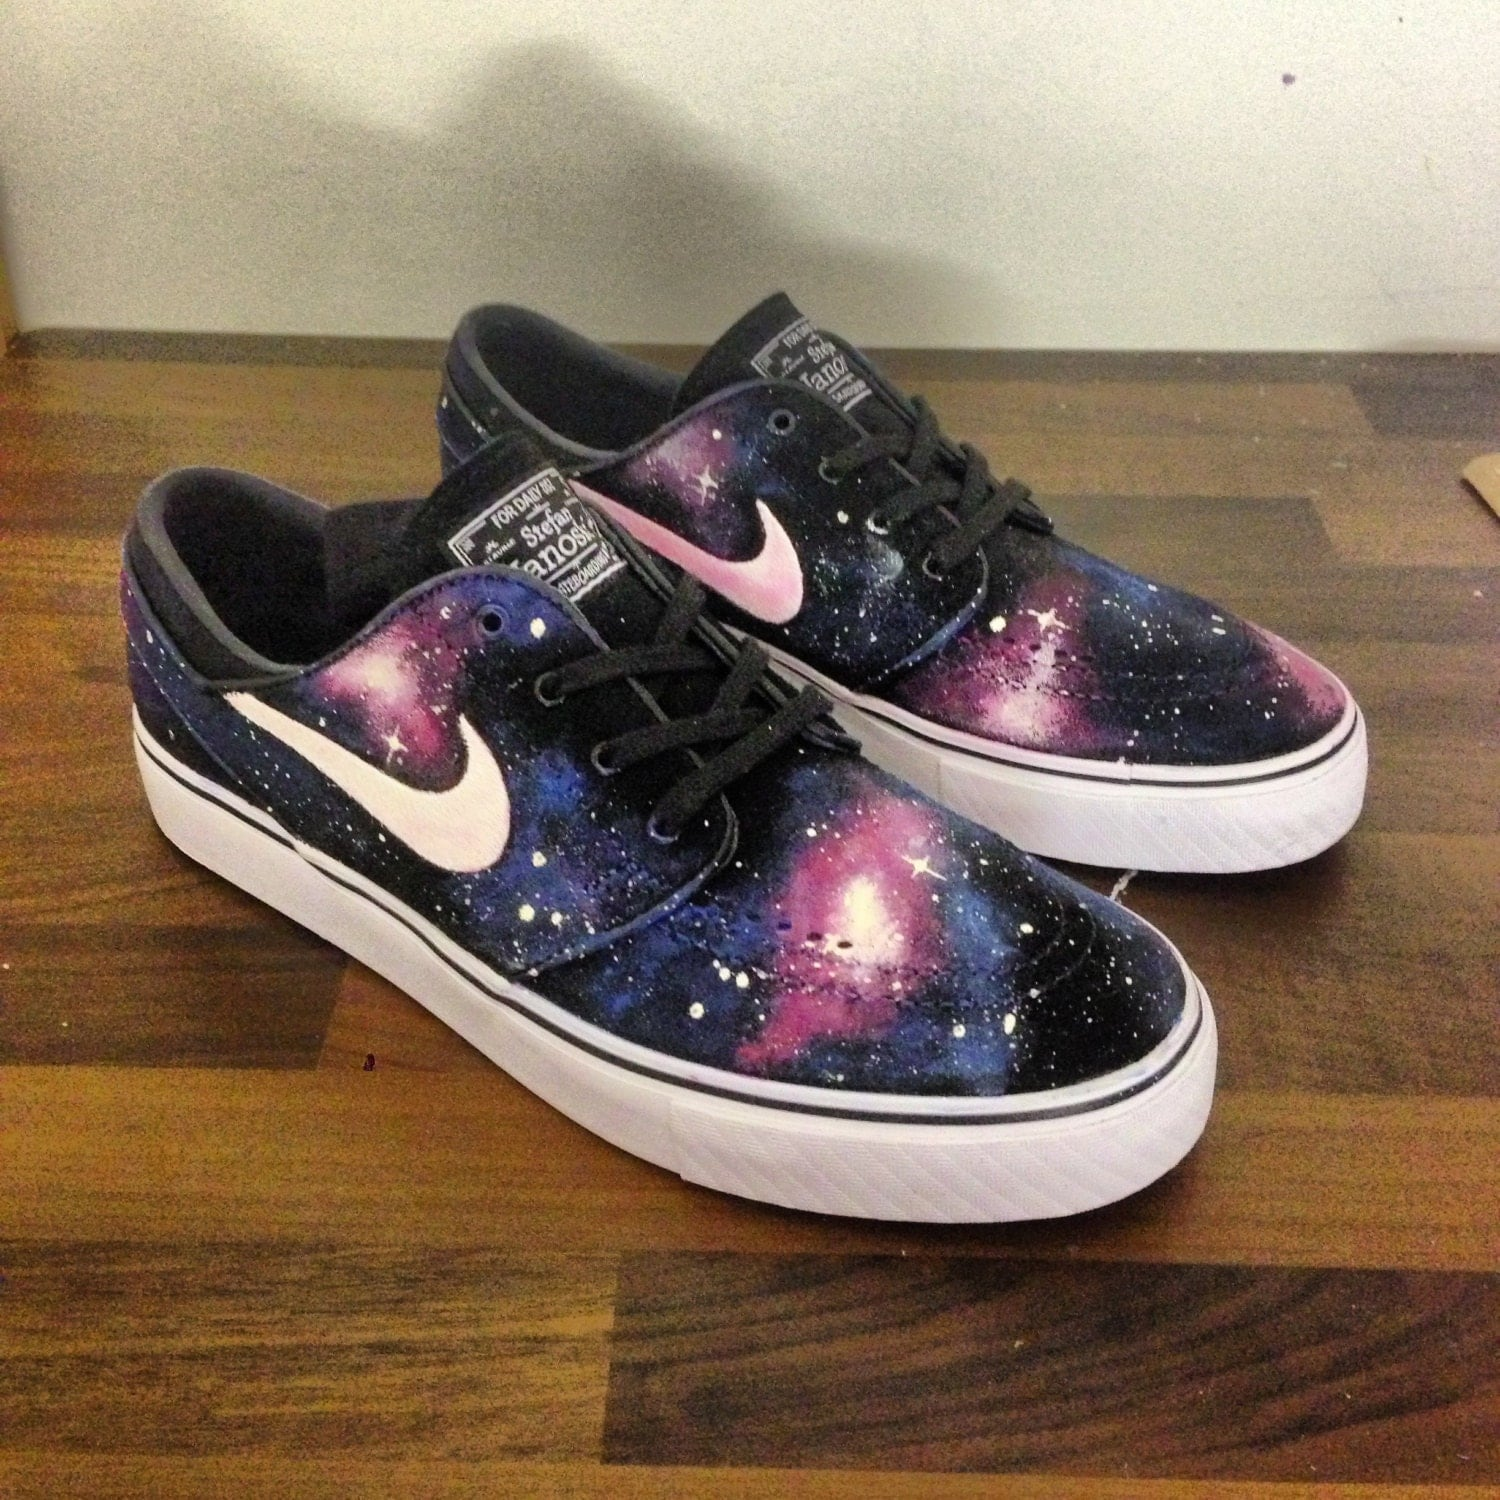 Popular Nike Galaxy Running Shoes Nike Roshe Run  Galaxy Buyku35jpg